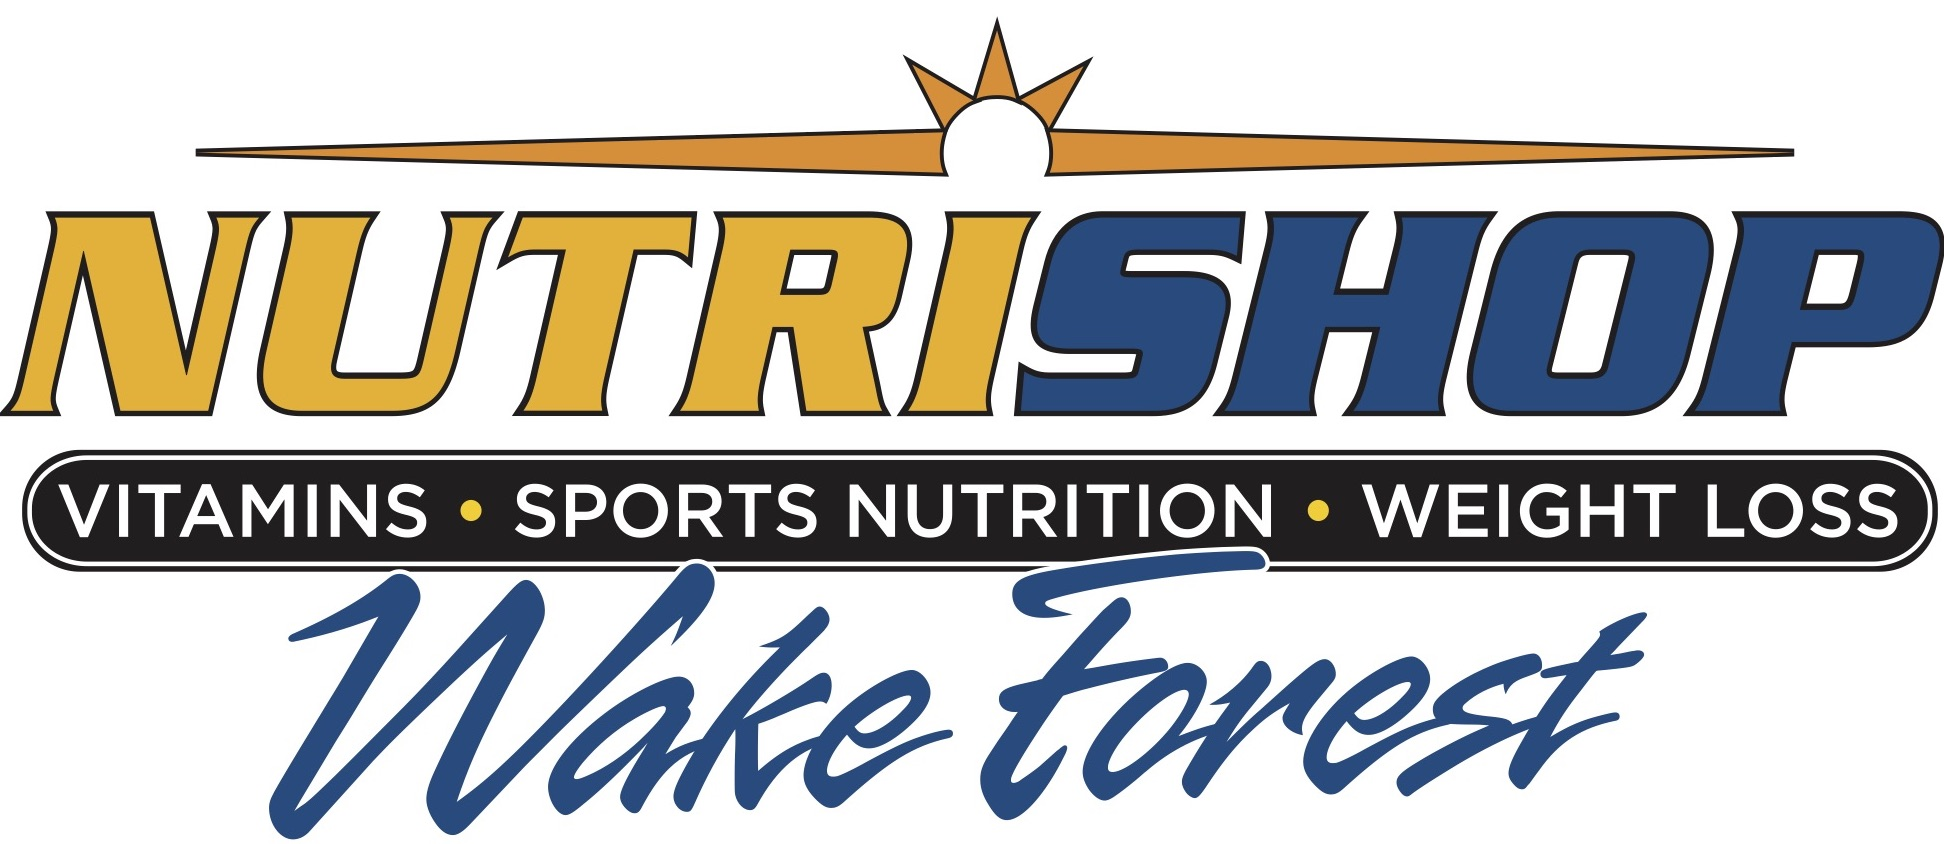 Sponsor Nutrishop Wake Forest